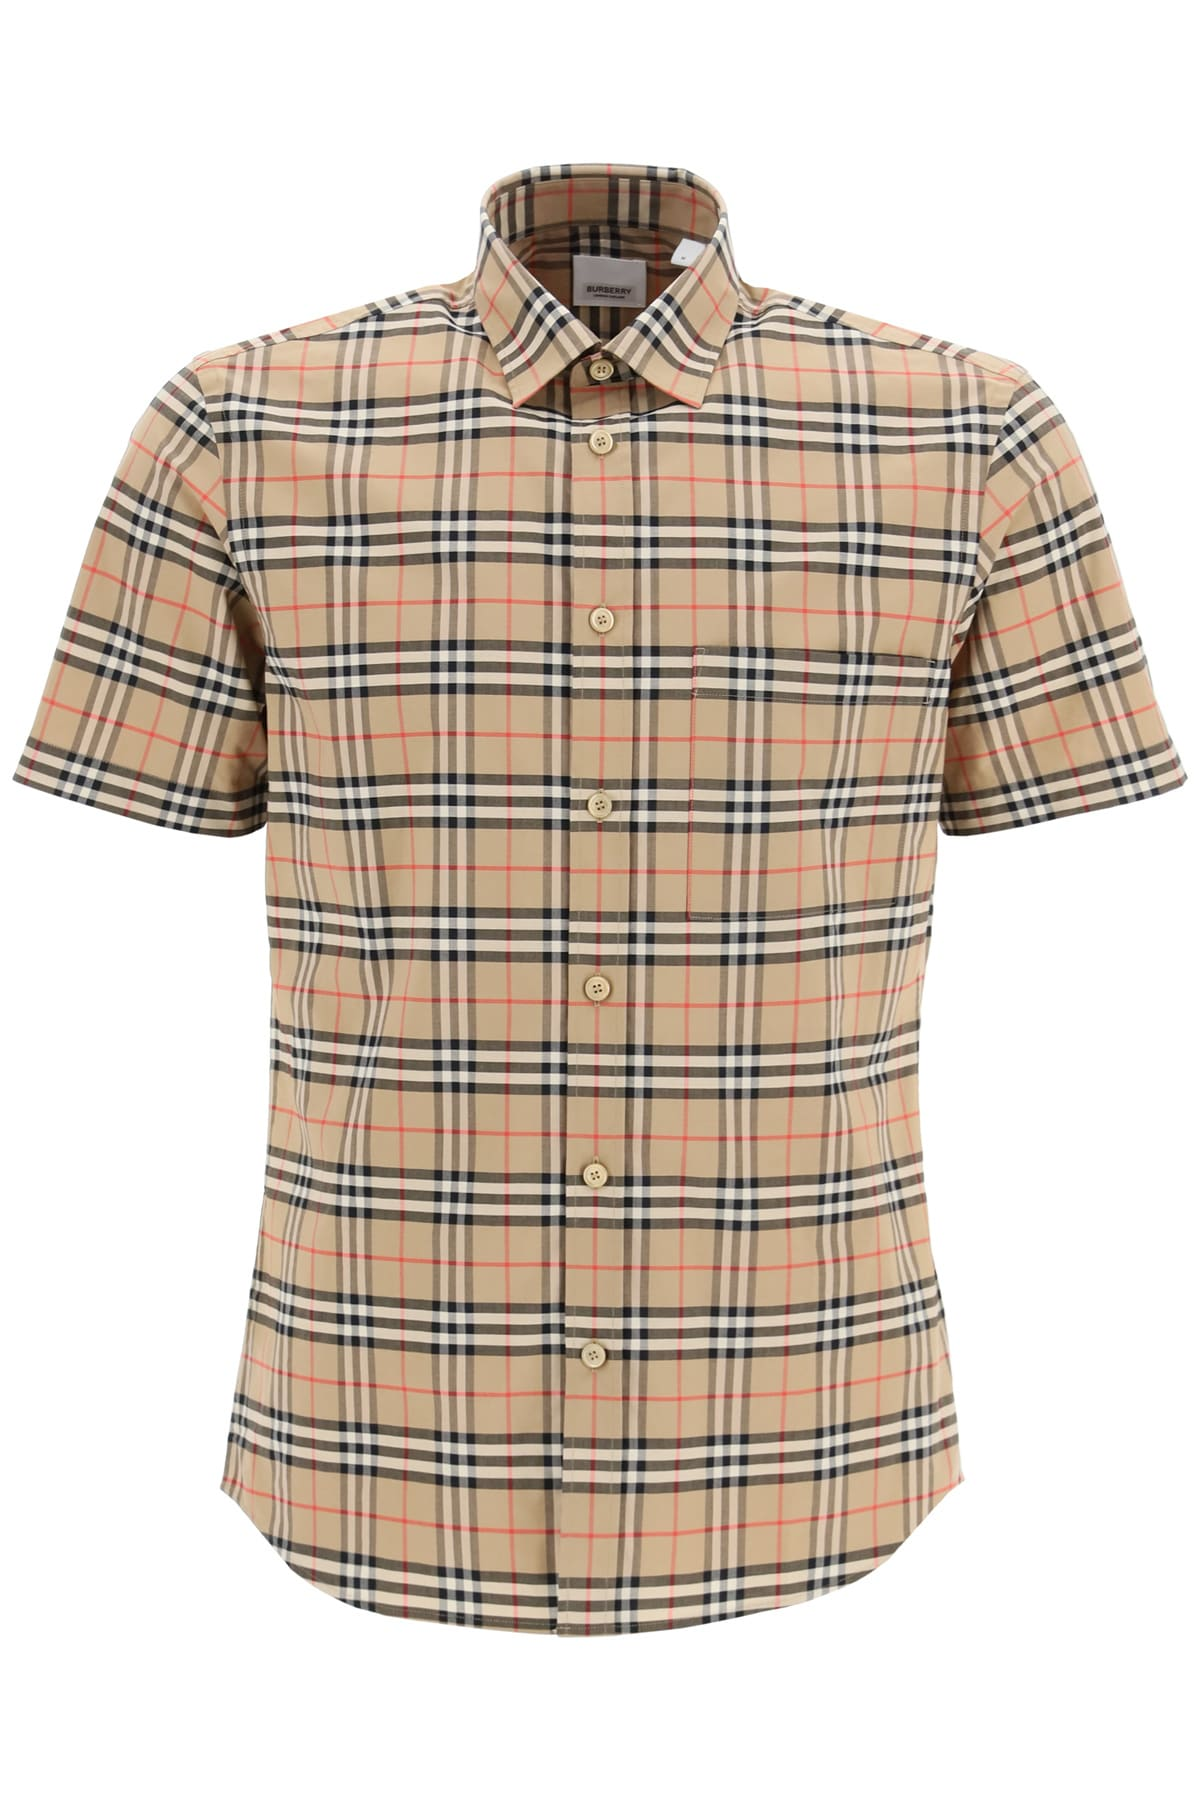 Burberry SIMPSON SHIRT WITH TARTAN PATTERN